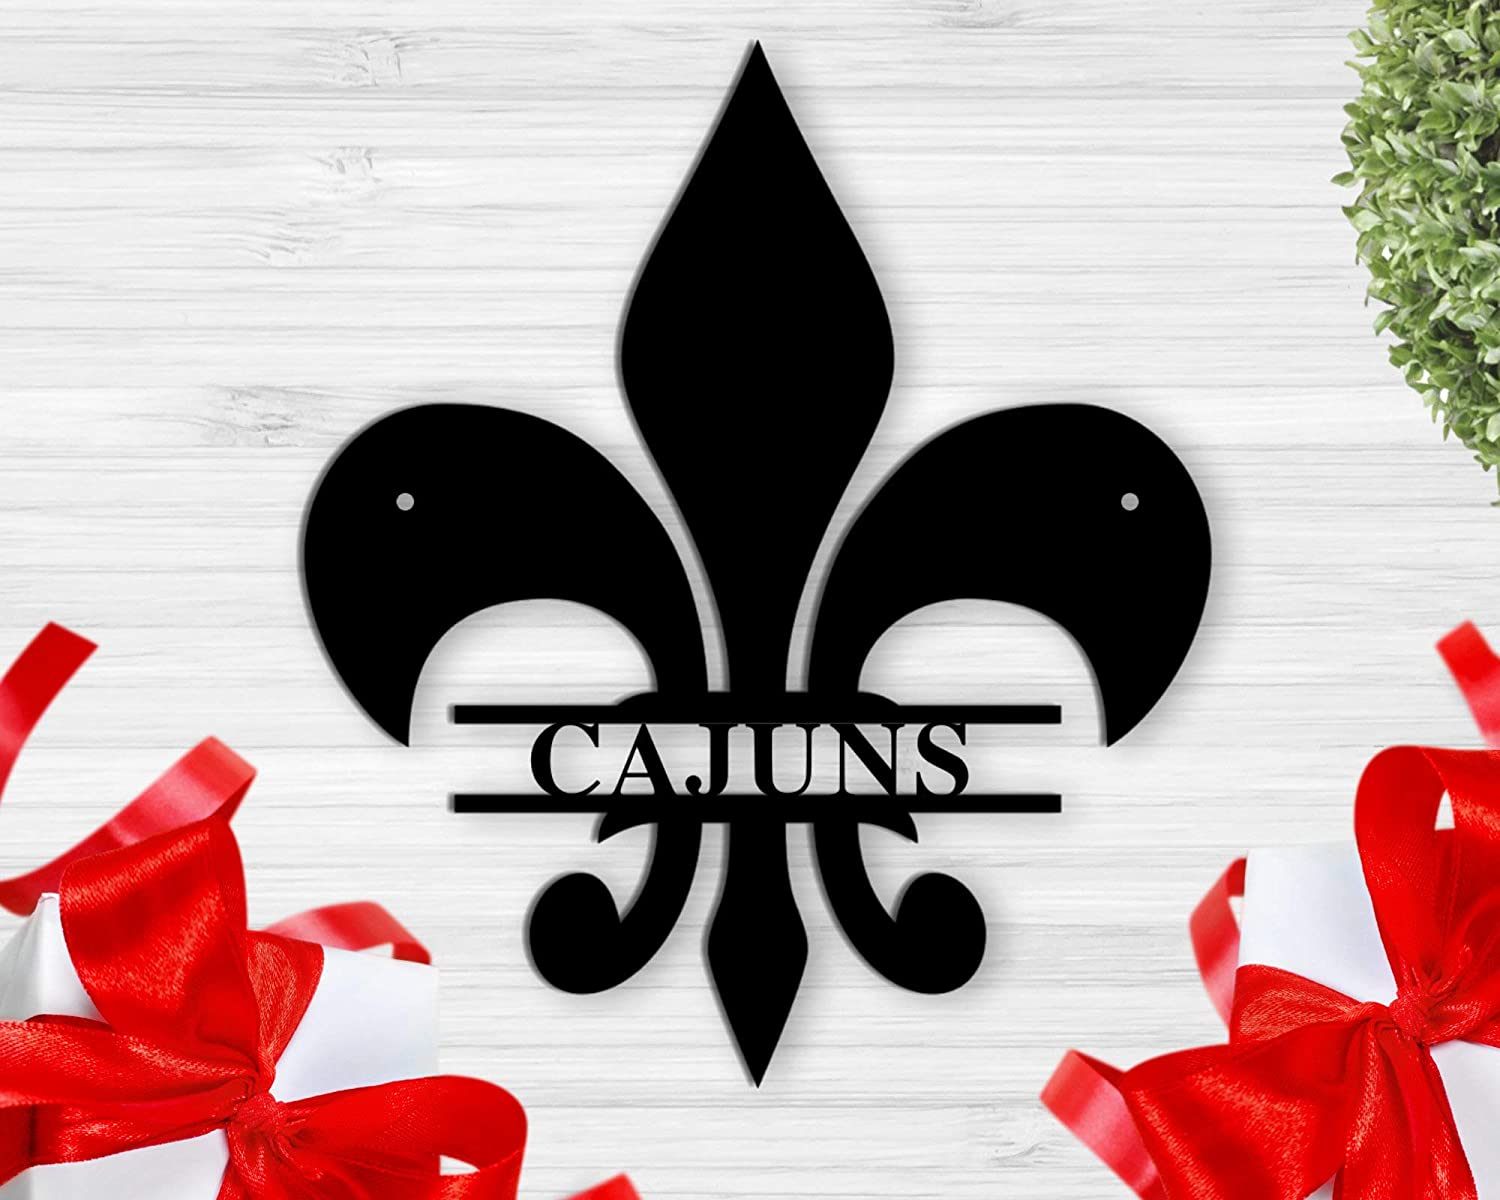 Tamengi Fleur De Lis Customized Sign, Personalized Metal Sign Wall Hanging Wall Address Plaque Room Decor Monogram Wall Art Outdoor Indoor Metal Sign 18inch